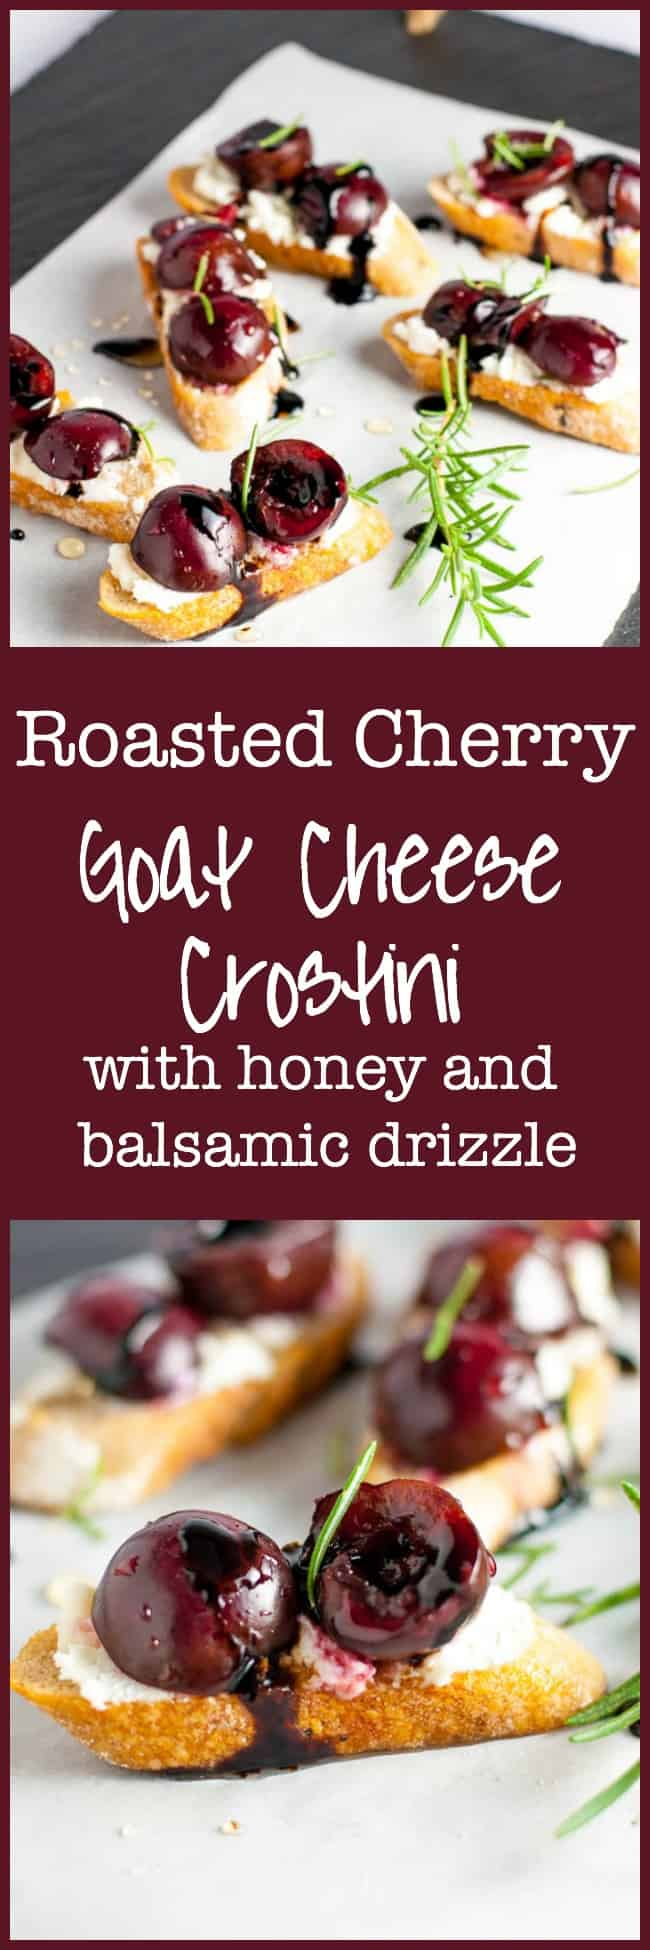 Easy and delicious Roasted Cherry Goat Cheese Crostini with honey and balsamic drizzle. Incredible flavours! #appetizer #cherries #goat_cheese #honey #baguette #crostini #fingerfood